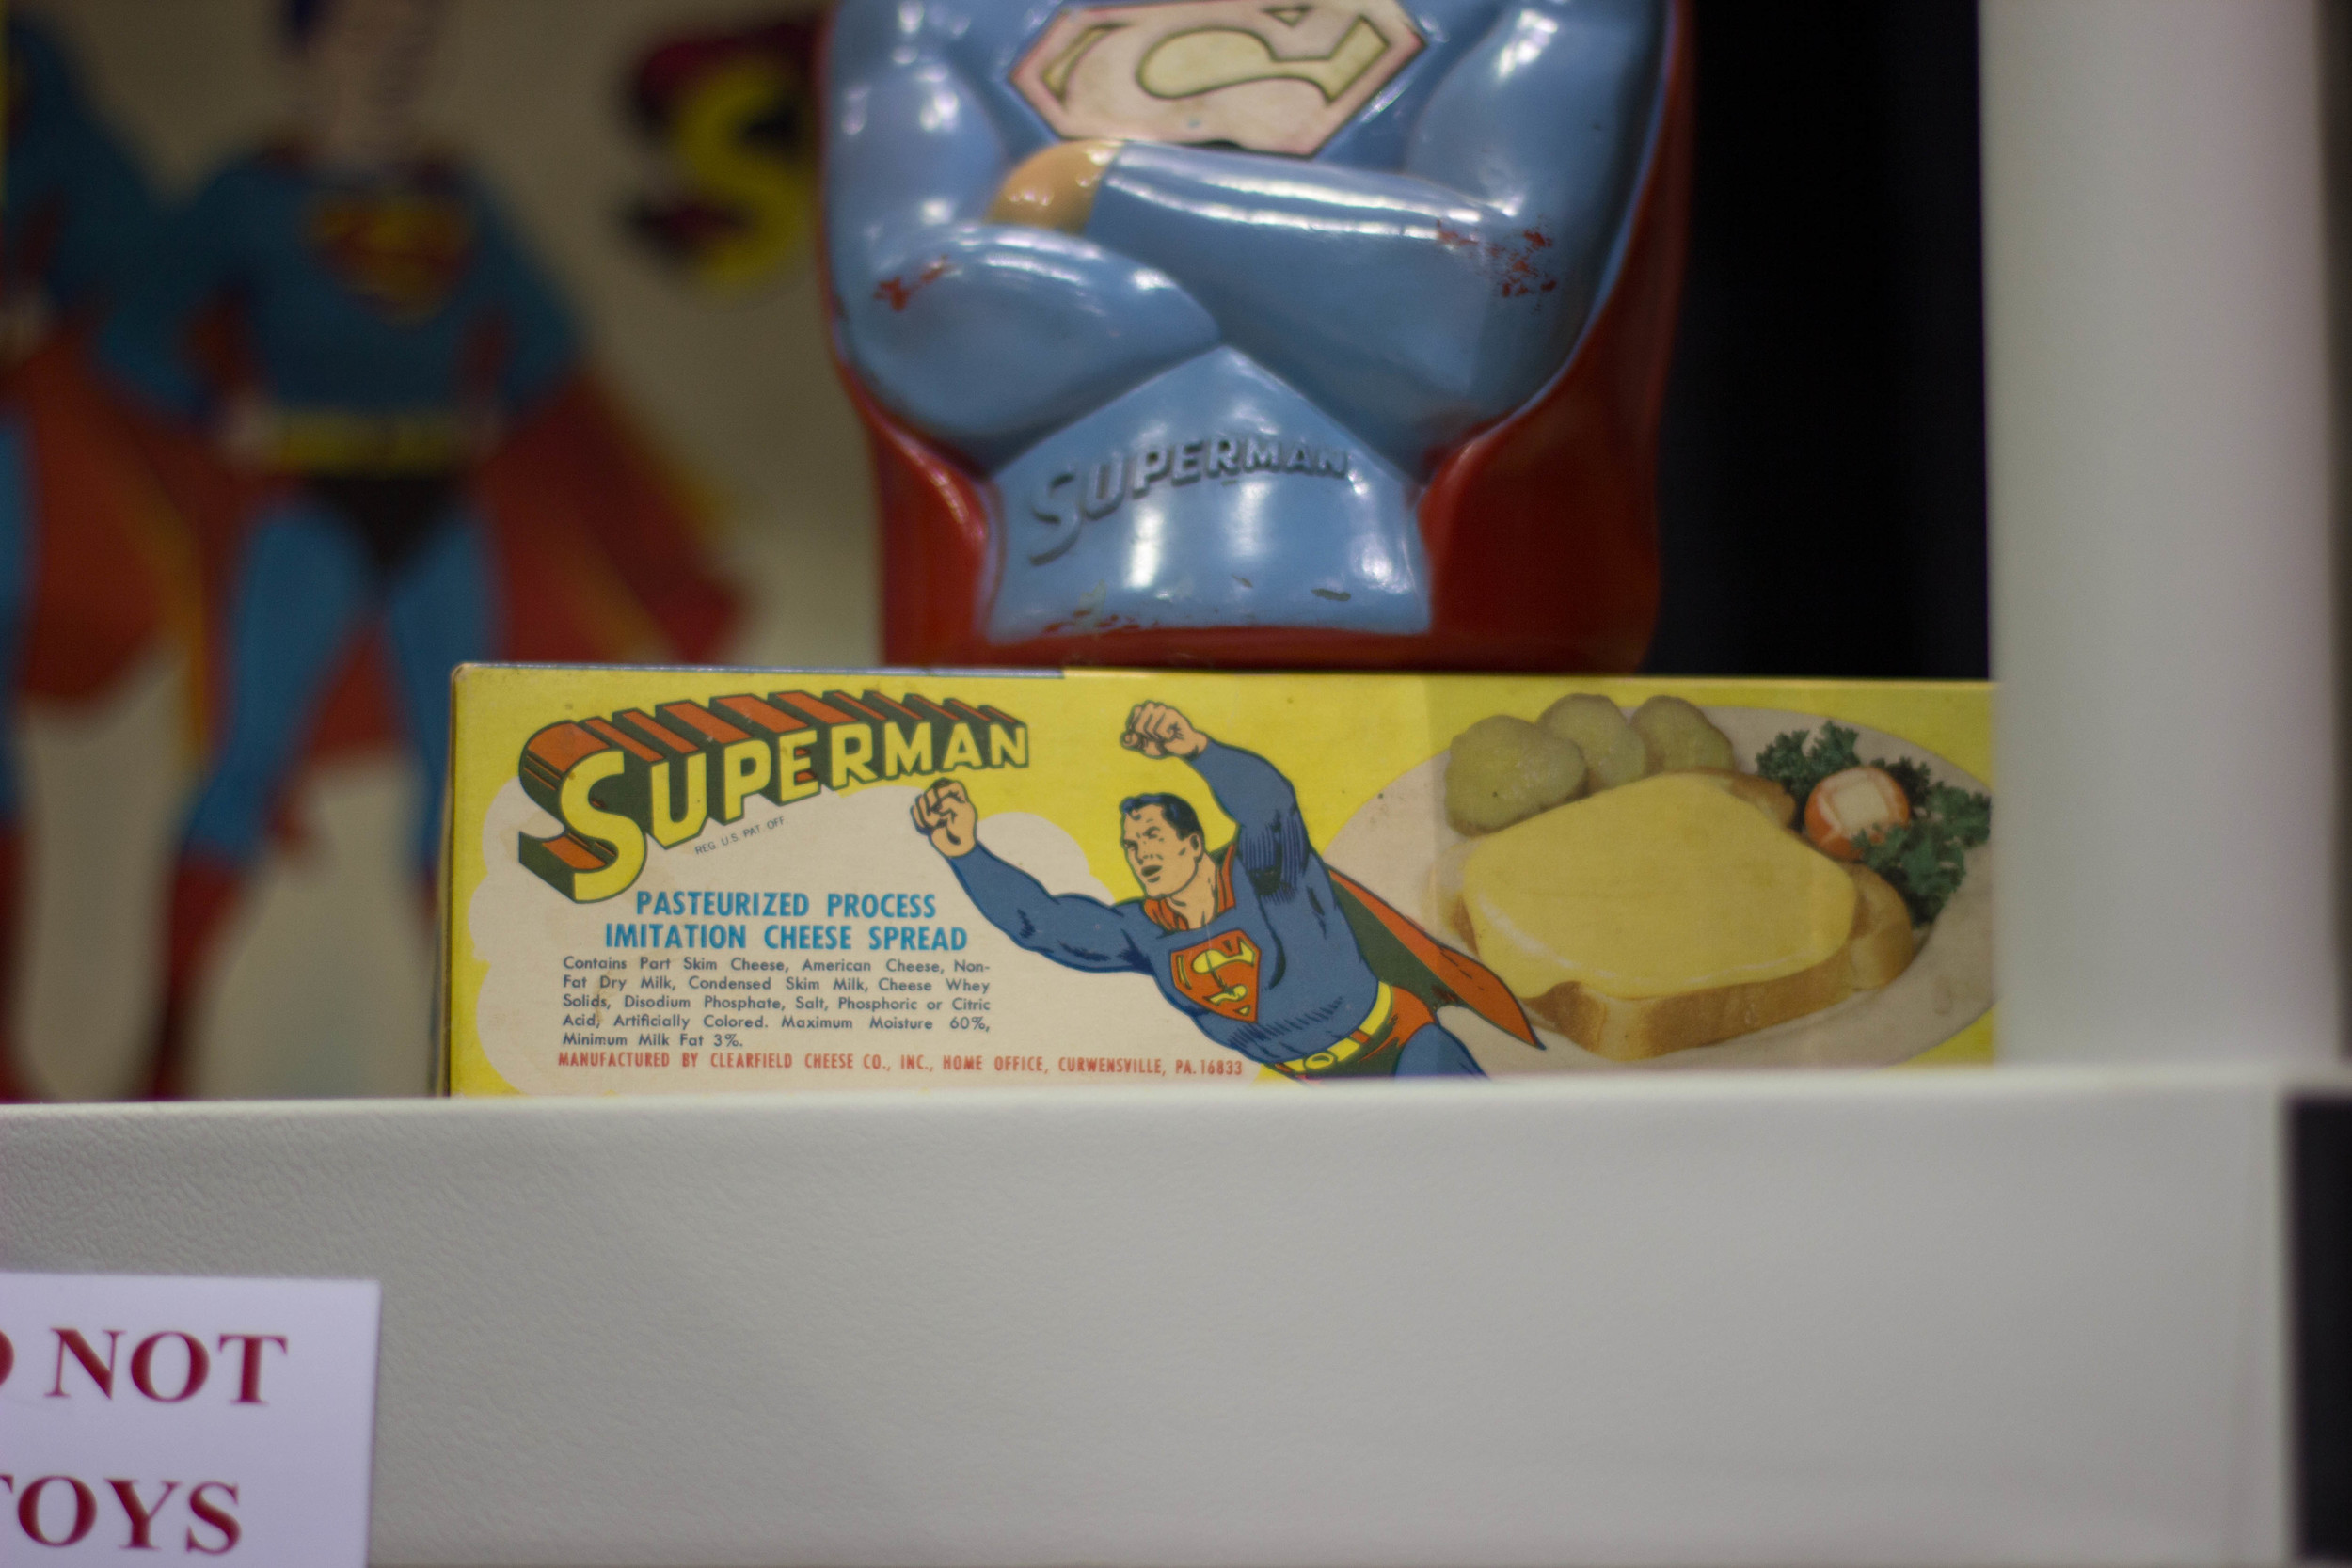 Finally, Superman found the pasteurized process imitation cheese spread worthy of the Superman name